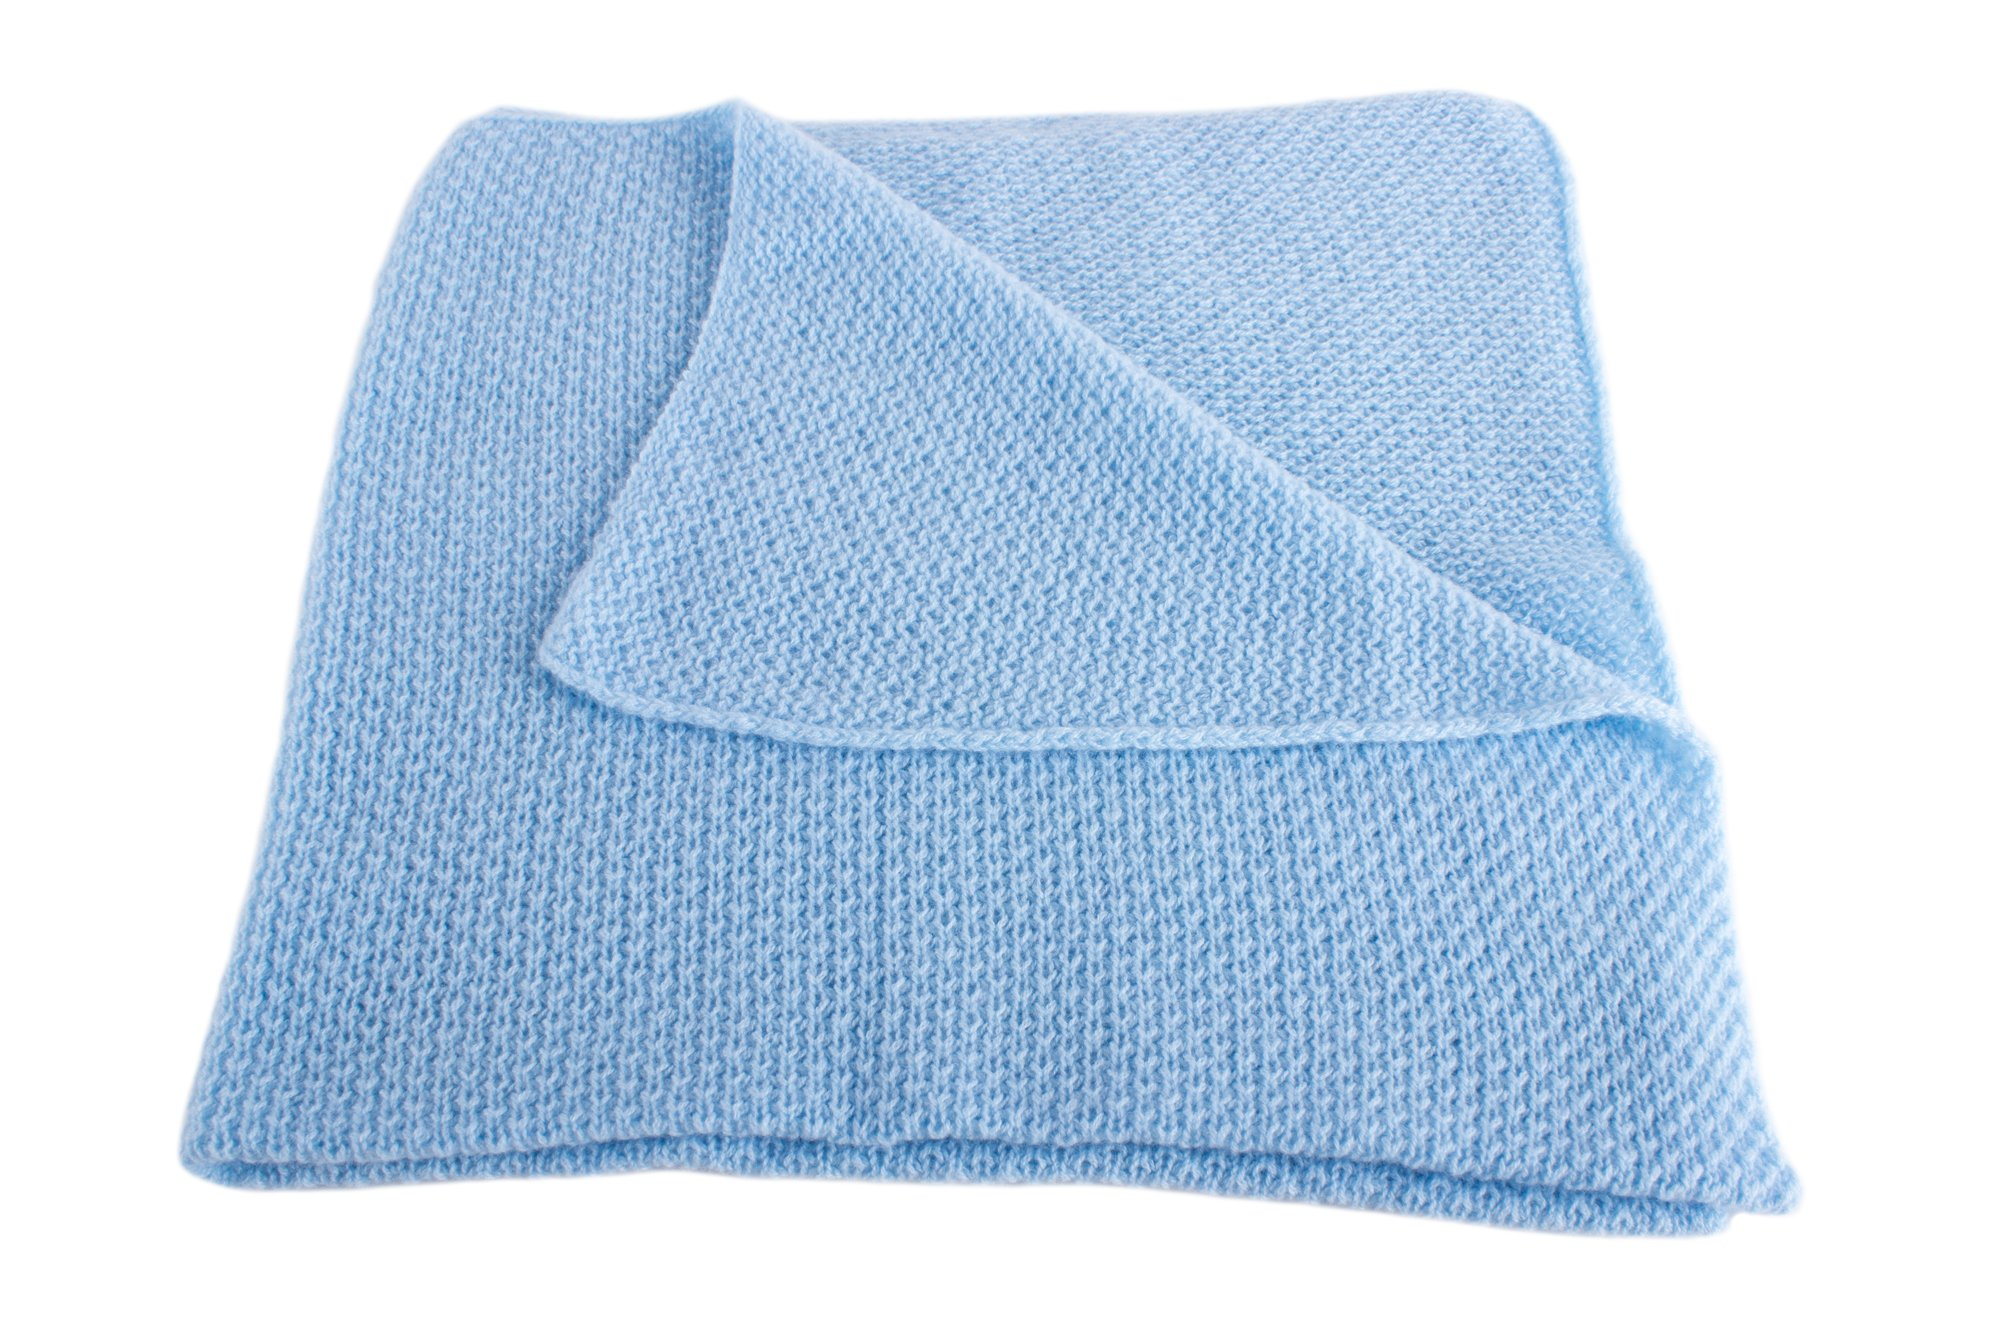 Boys Super Soft 100% Cashmere Baby Blanket - 'Baby Blue' - hand made in Scotland by Love Cashmere